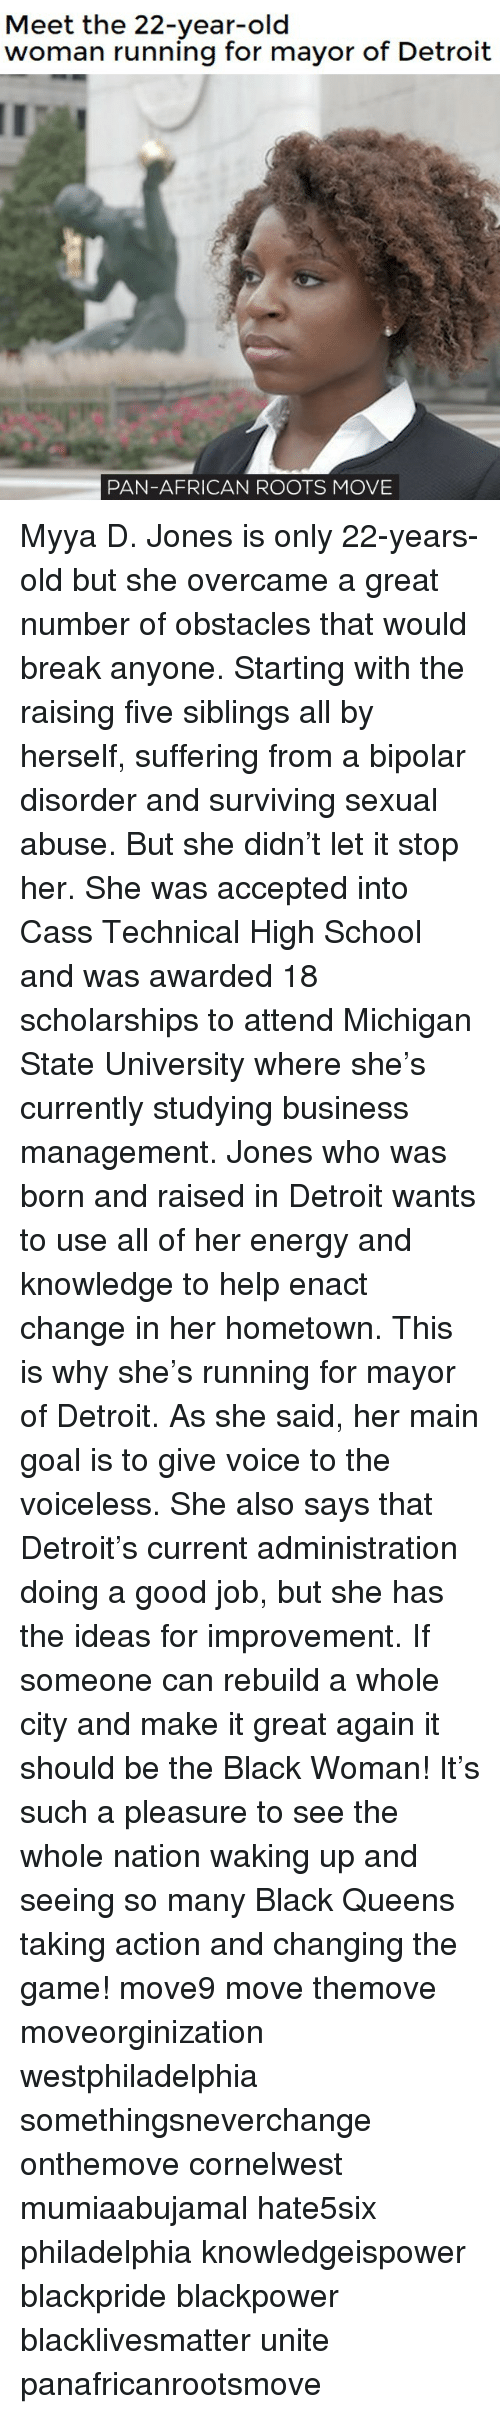 bipolar disorder: Meet the 22-year-old  woman running for mayor of Detroit  PAN-AFRICAN ROOTS MOVE Myya D. Jones is only 22-years-old but she overcame a great number of obstacles that would break anyone. Starting with the raising five siblings all by herself, suffering from a bipolar disorder and surviving sexual abuse. But she didn't let it stop her. She was accepted into Cass Technical High School and was awarded 18 scholarships to attend Michigan State University where she's currently studying business management. Jones who was born and raised in Detroit wants to use all of her energy and knowledge to help enact change in her hometown. This is why she's running for mayor of Detroit. As she said, her main goal is to give voice to the voiceless. She also says that Detroit's current administration doing a good job, but she has the ideas for improvement. If someone can rebuild a whole city and make it great again it should be the Black Woman! It's such a pleasure to see the whole nation waking up and seeing so many Black Queens taking action and changing the game! move9 move themove moveorginization westphiladelphia somethingsneverchange onthemove cornelwest mumiaabujamal hate5six philadelphia knowledgeispower blackpride blackpower blacklivesmatter unite panafricanrootsmove